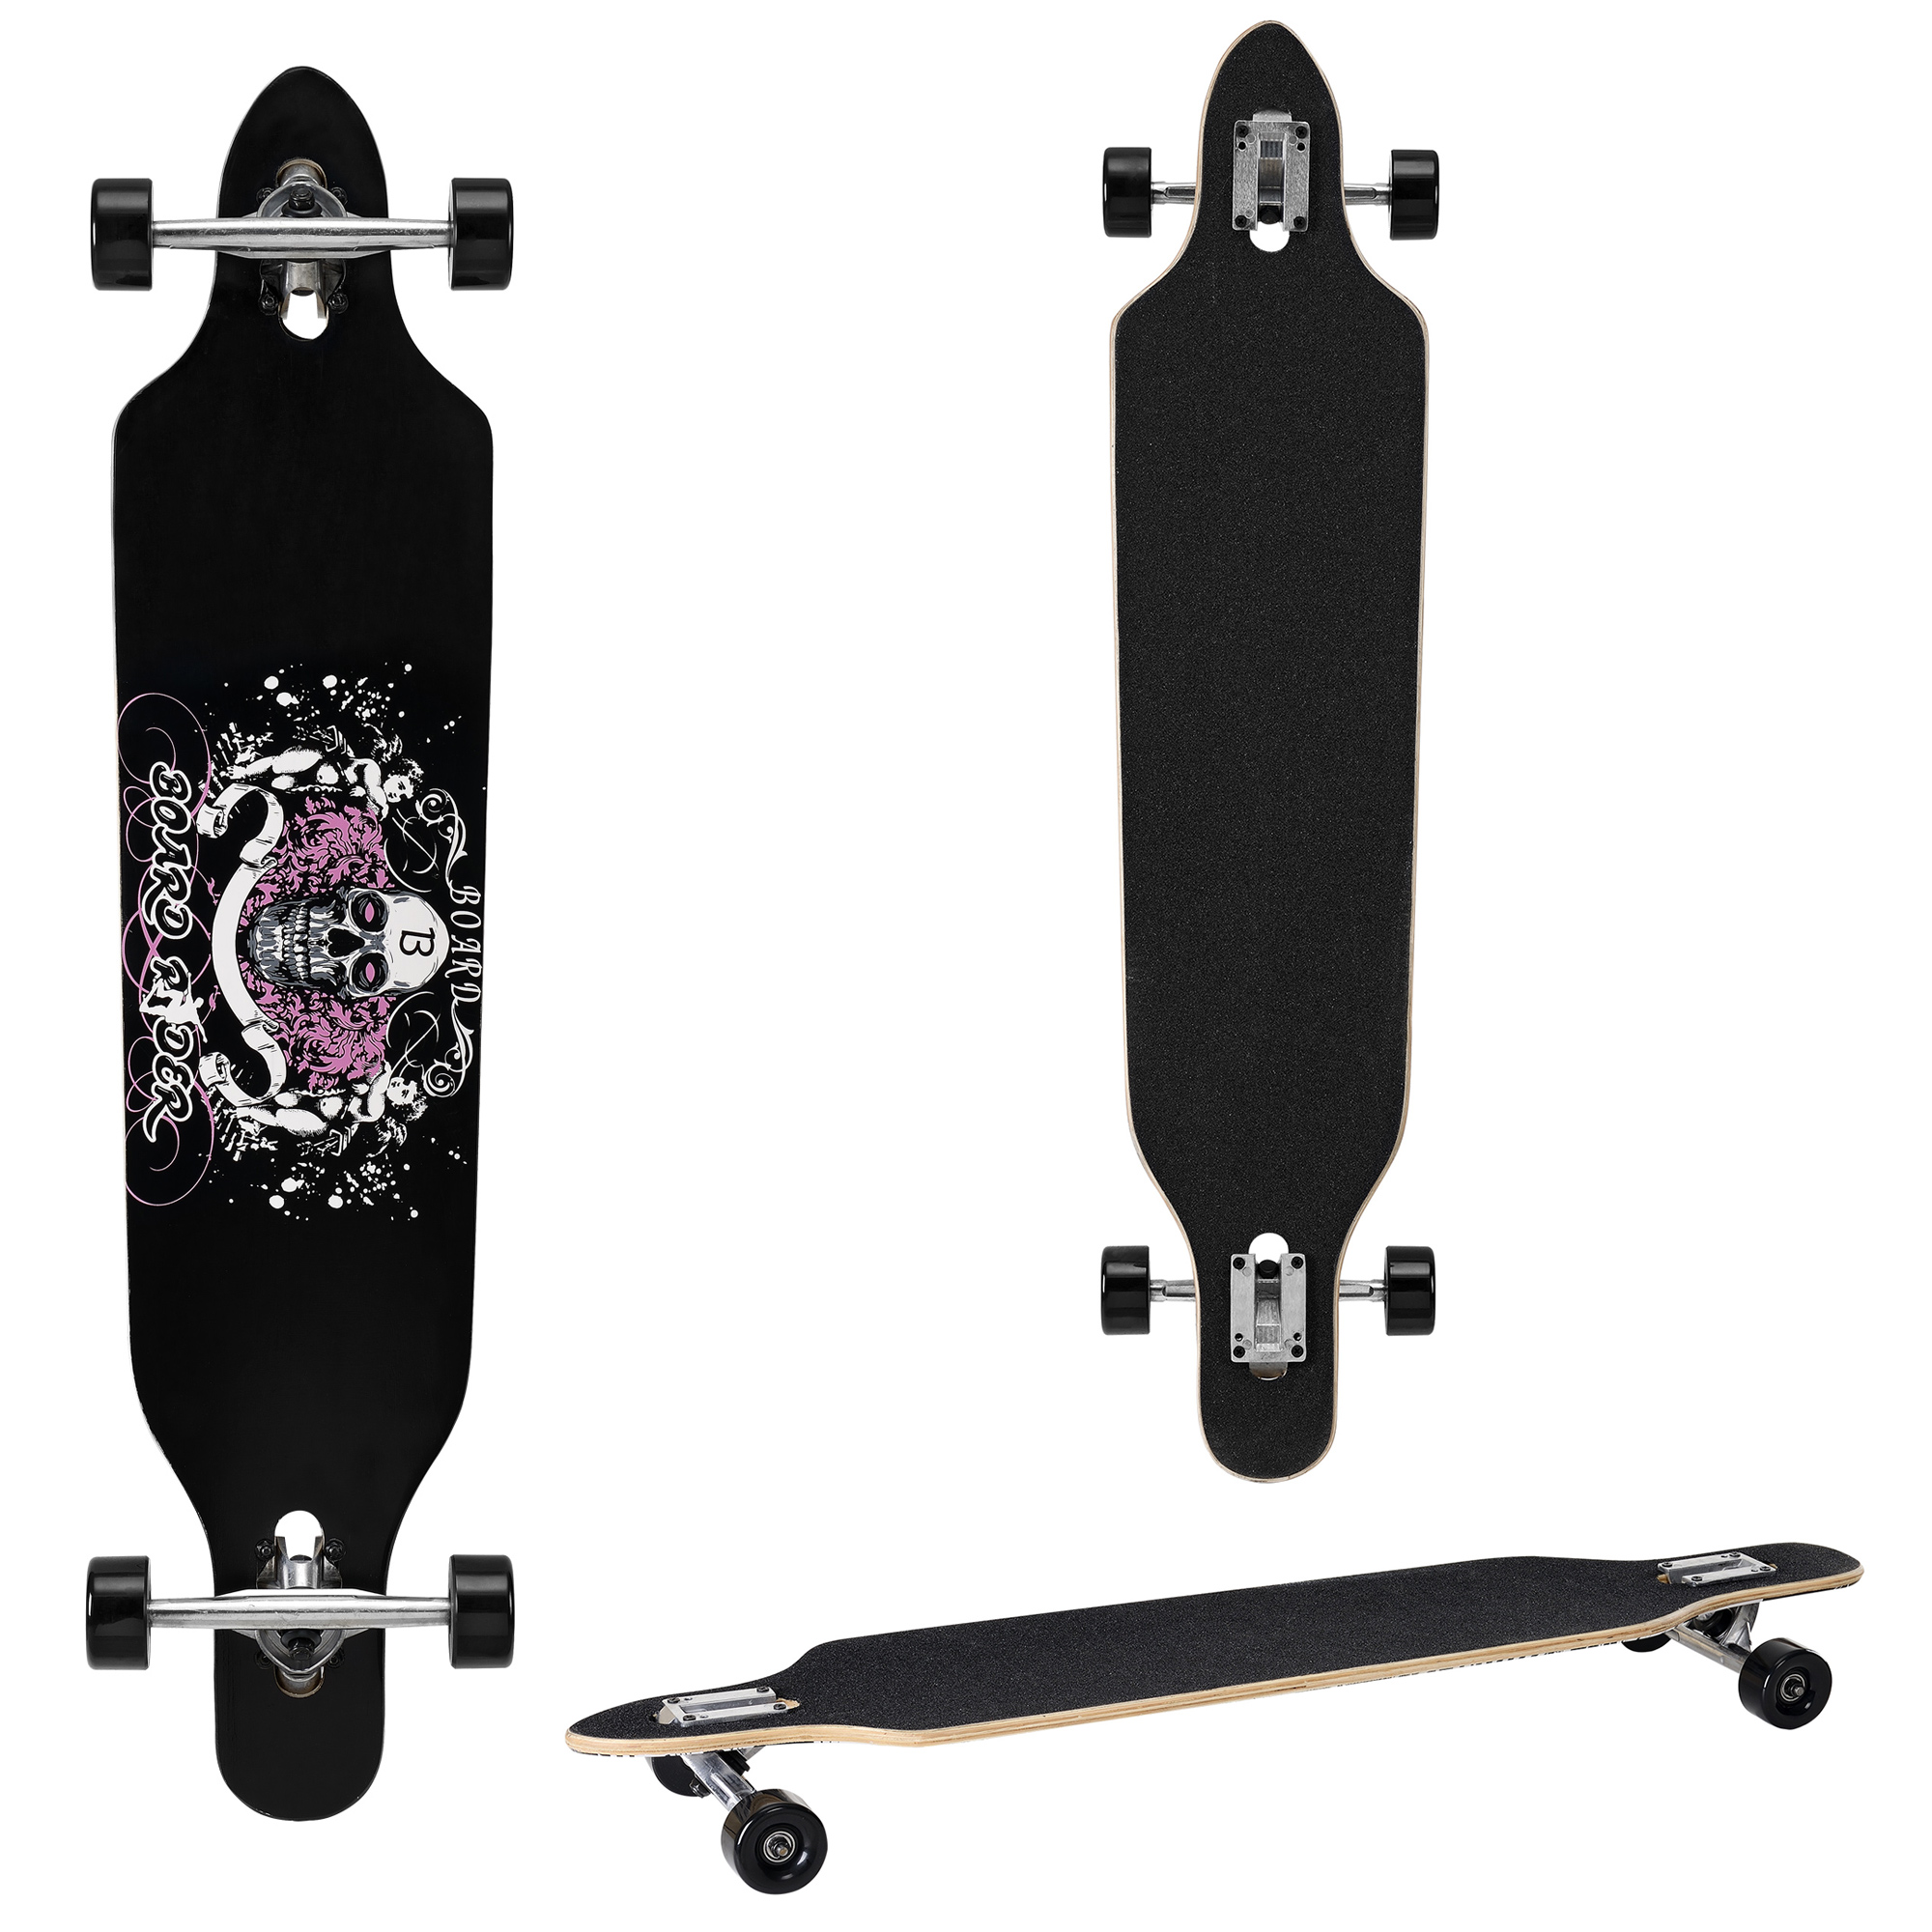 protec longboard skateboard 104x23cm drop through komplett board cruiser sport. Black Bedroom Furniture Sets. Home Design Ideas